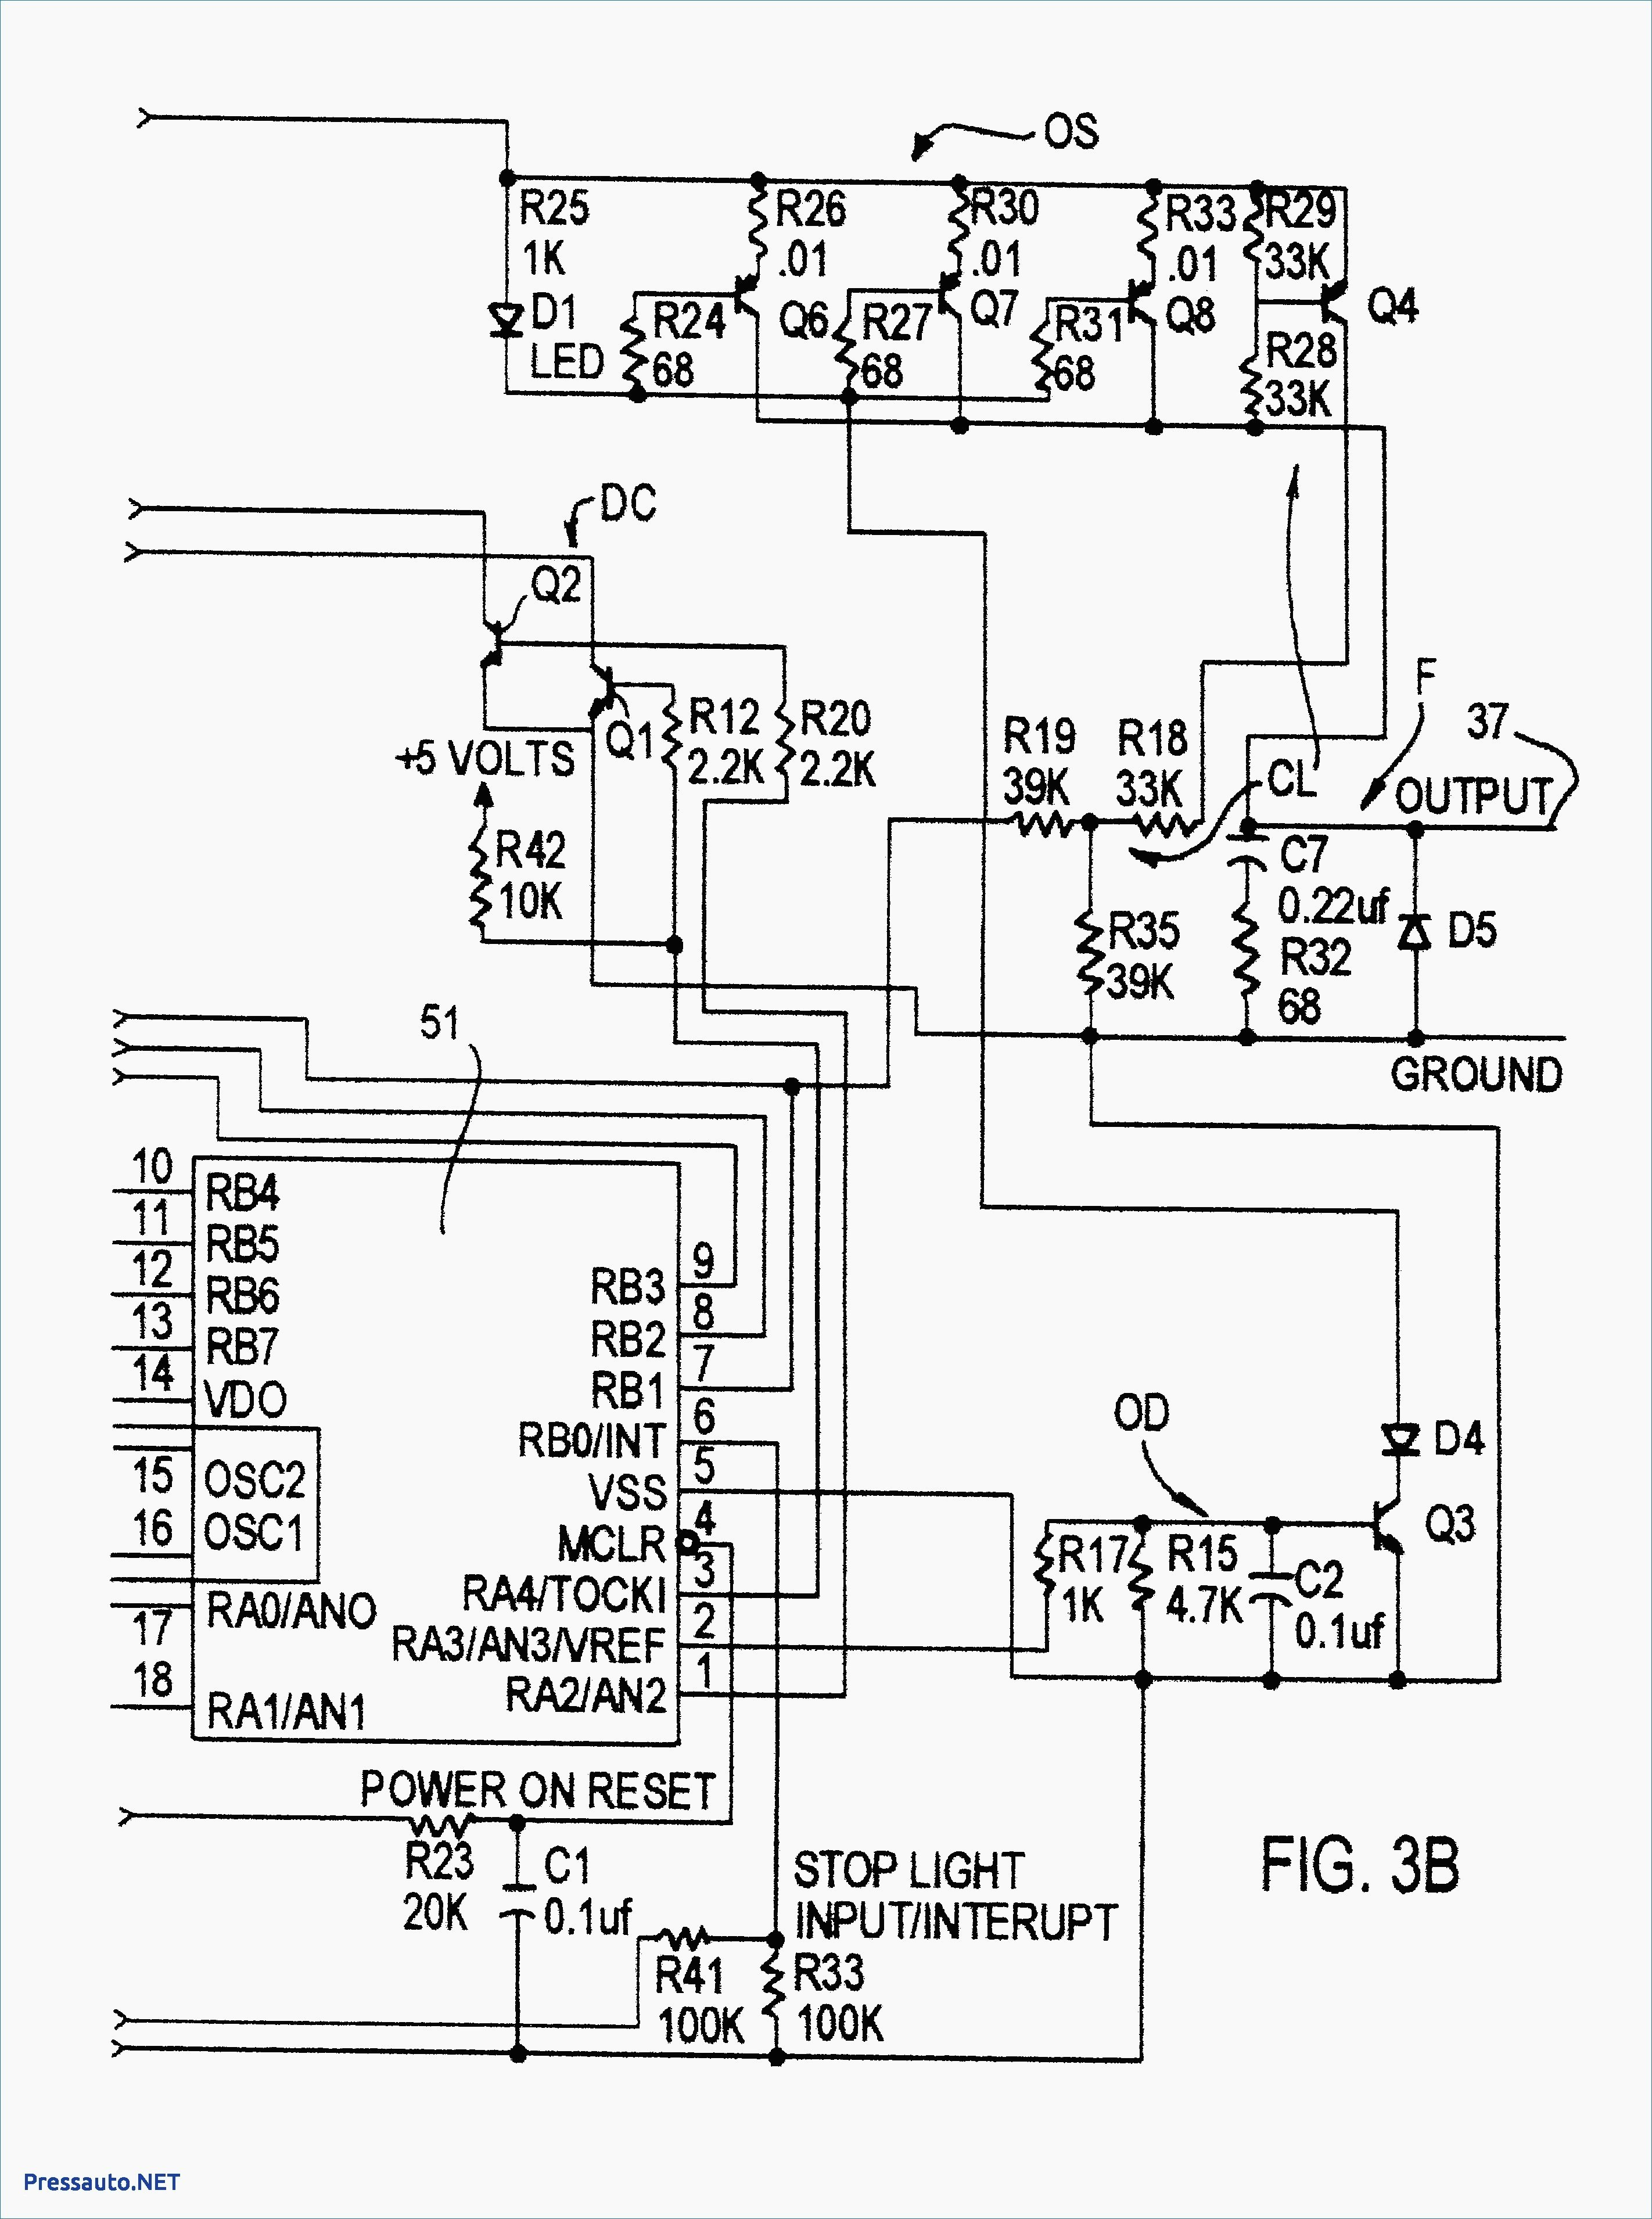 For Sa 200 Wiring Schematics Diagram Lincoln F163 Welder Librarymarvelous Millermatic 211 Gallery Best Wire Home